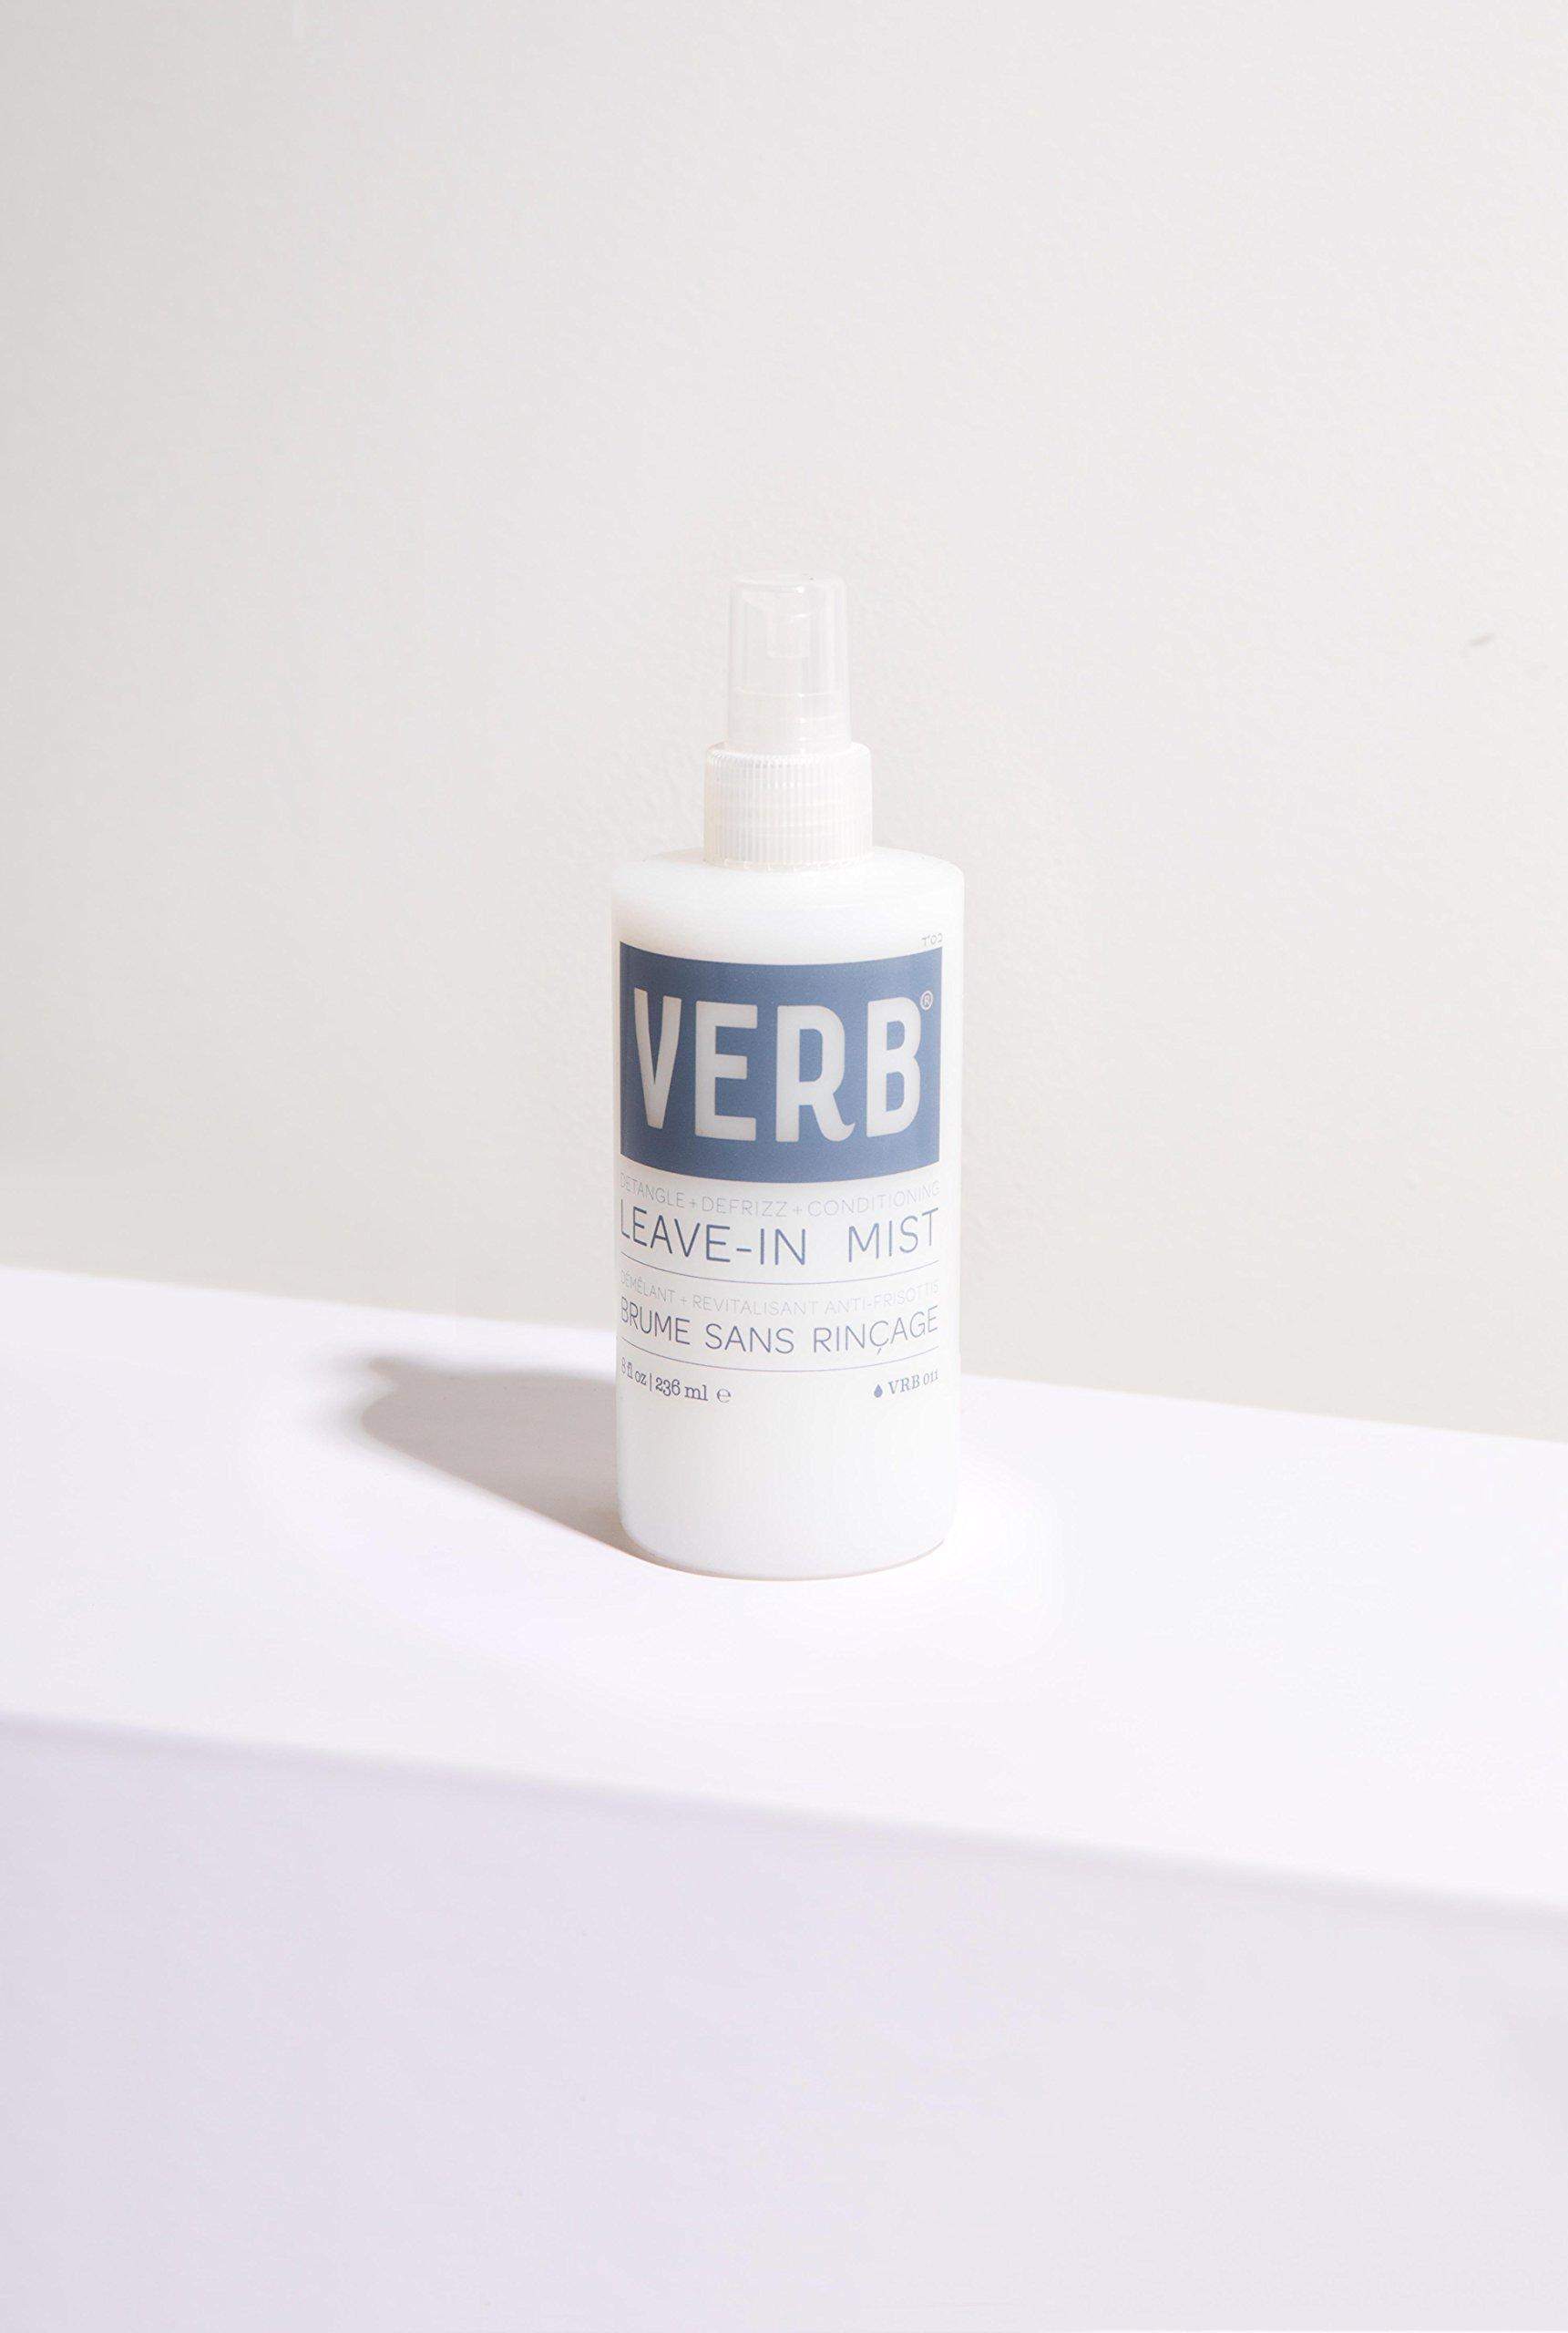 Verb Leave-in Mist - Detangle + Defrizz + Conditioning 6.5 oz by verb